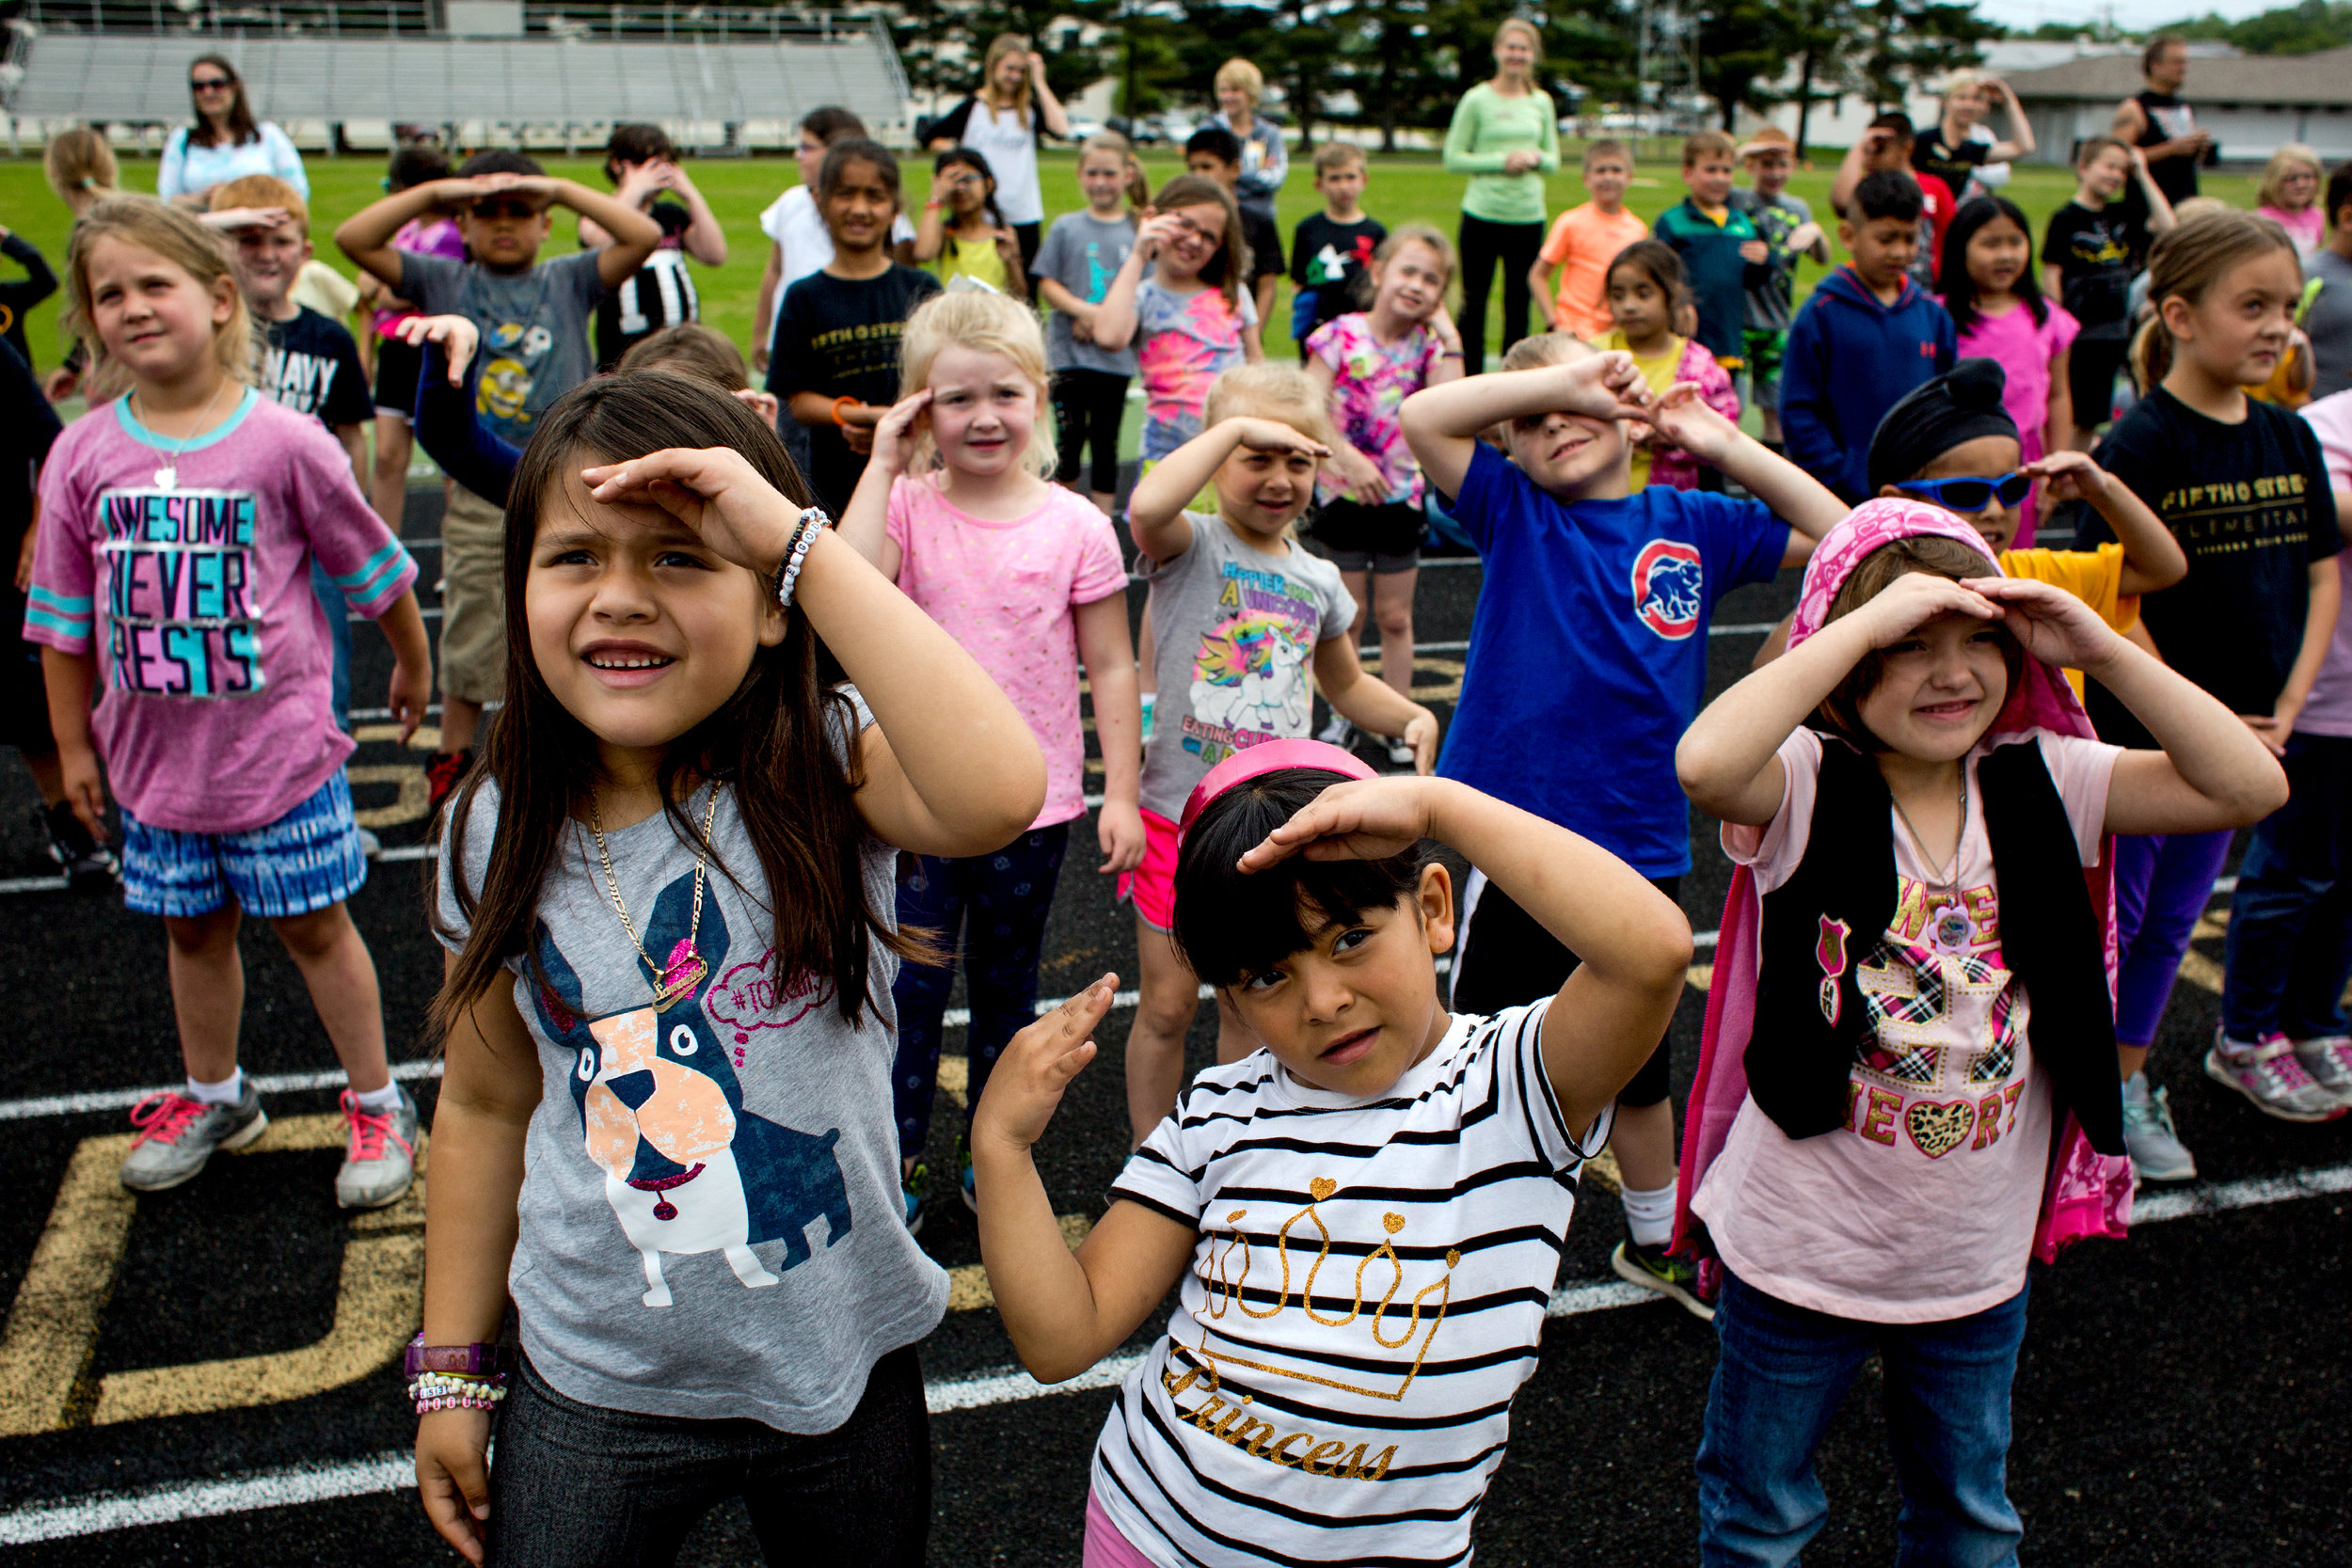 Fifth Street School kindergartners Samantha Escobar DeRenteria, left, Karina Salas Rodriguez and Ariel Page broke out their best moves Friday during a Zumba class as part of the closing ceremony of the Jasper school's annual Whiskers Walk. Families joined students throughout the day for the walk-a-thon around the track next door at Jerry Brewer Alumni Stadium.